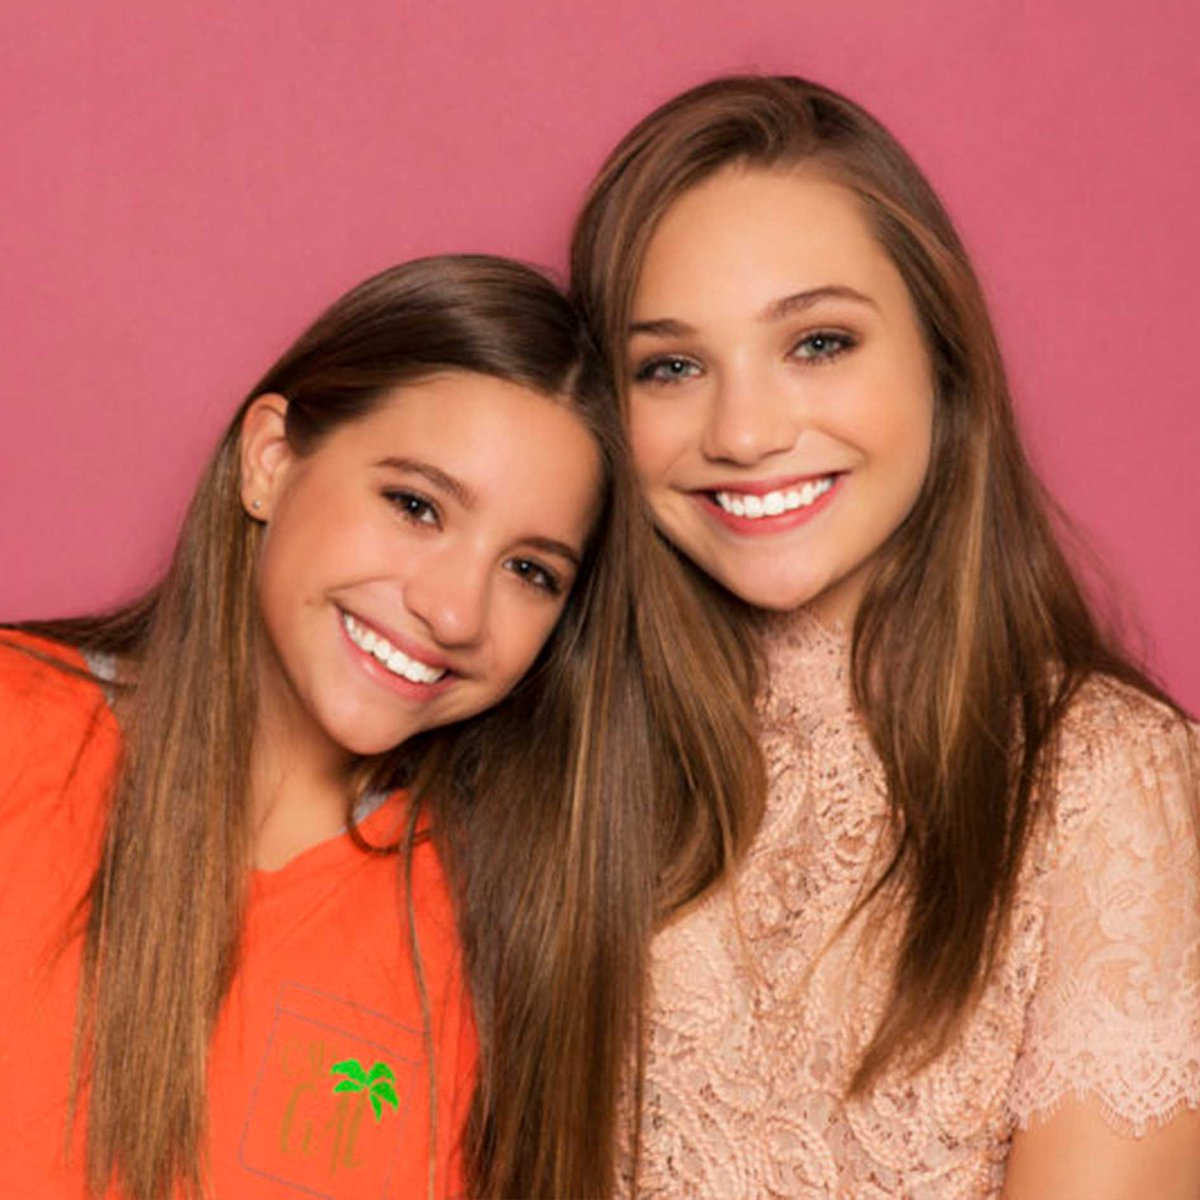 attention maddie ziegler mackenzie ziegler fans set your ziegler fans set your alarms for 10am tomorrow morning to secure your tickets to their ultimate fan event dance masterclass qa meet greet and m4hsunfo